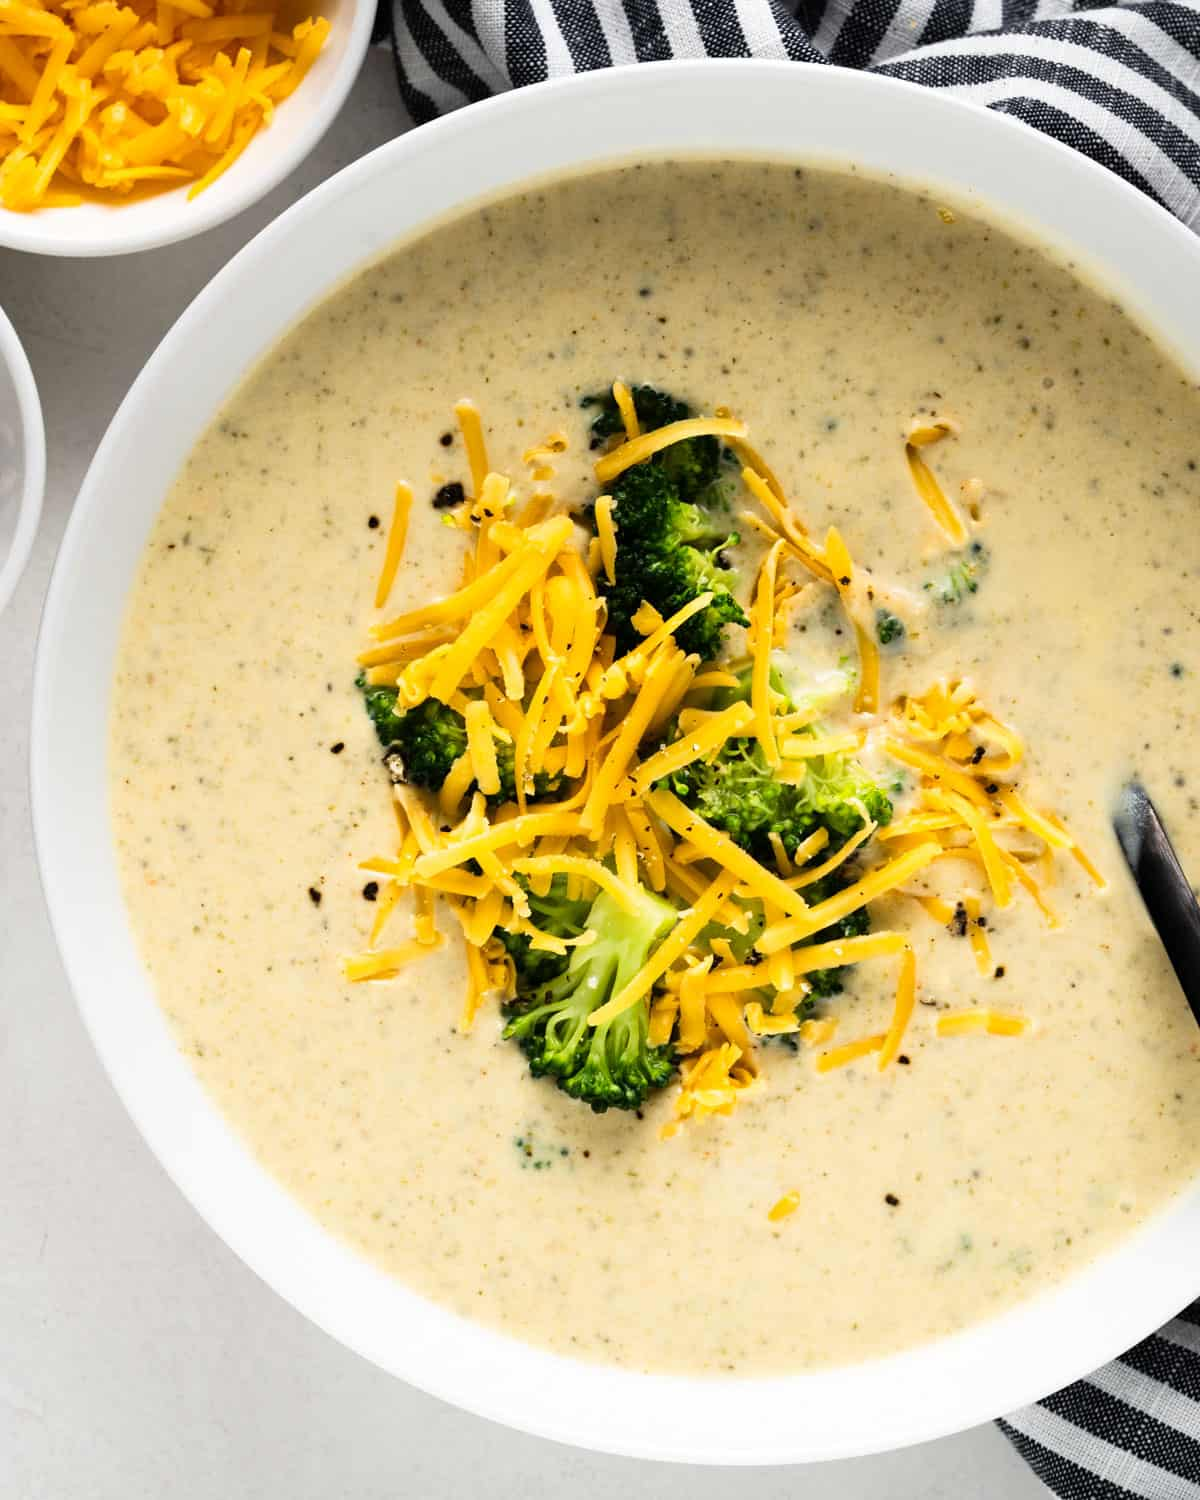 Bowl of Broccoli Cheddar Soup made in the Instant Pot